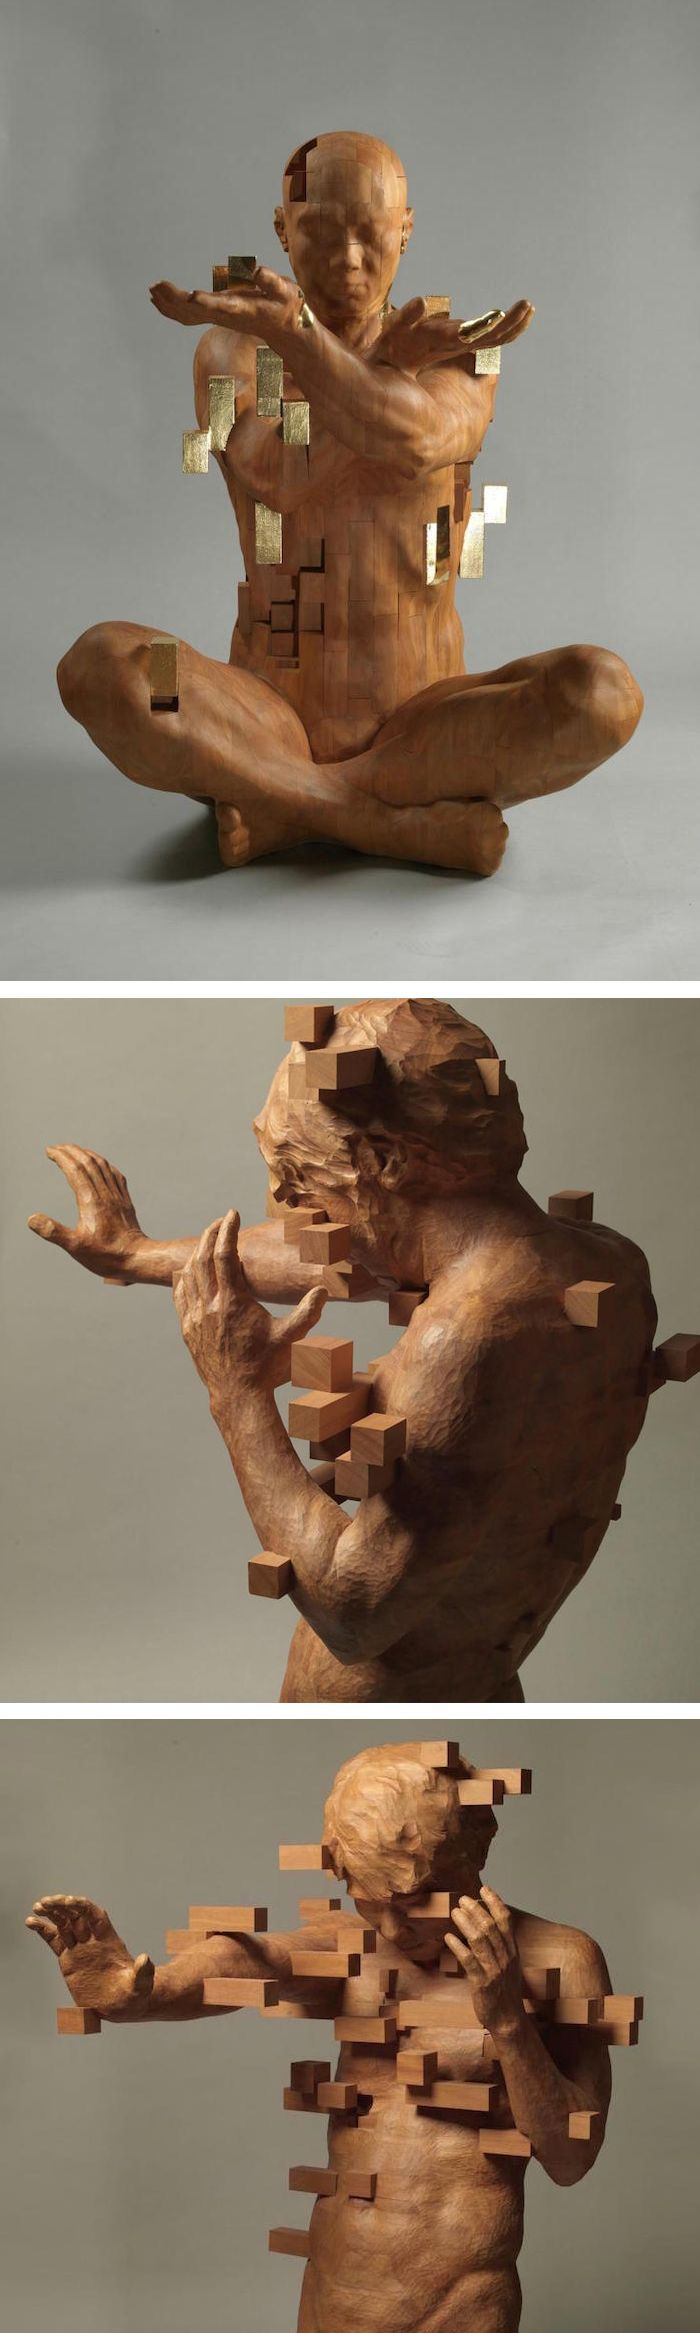 Best Wood Sculpture Images On Pinterest Artists Drawings And - Taiwanese artist creates wooden sculptures that look like digital glitches